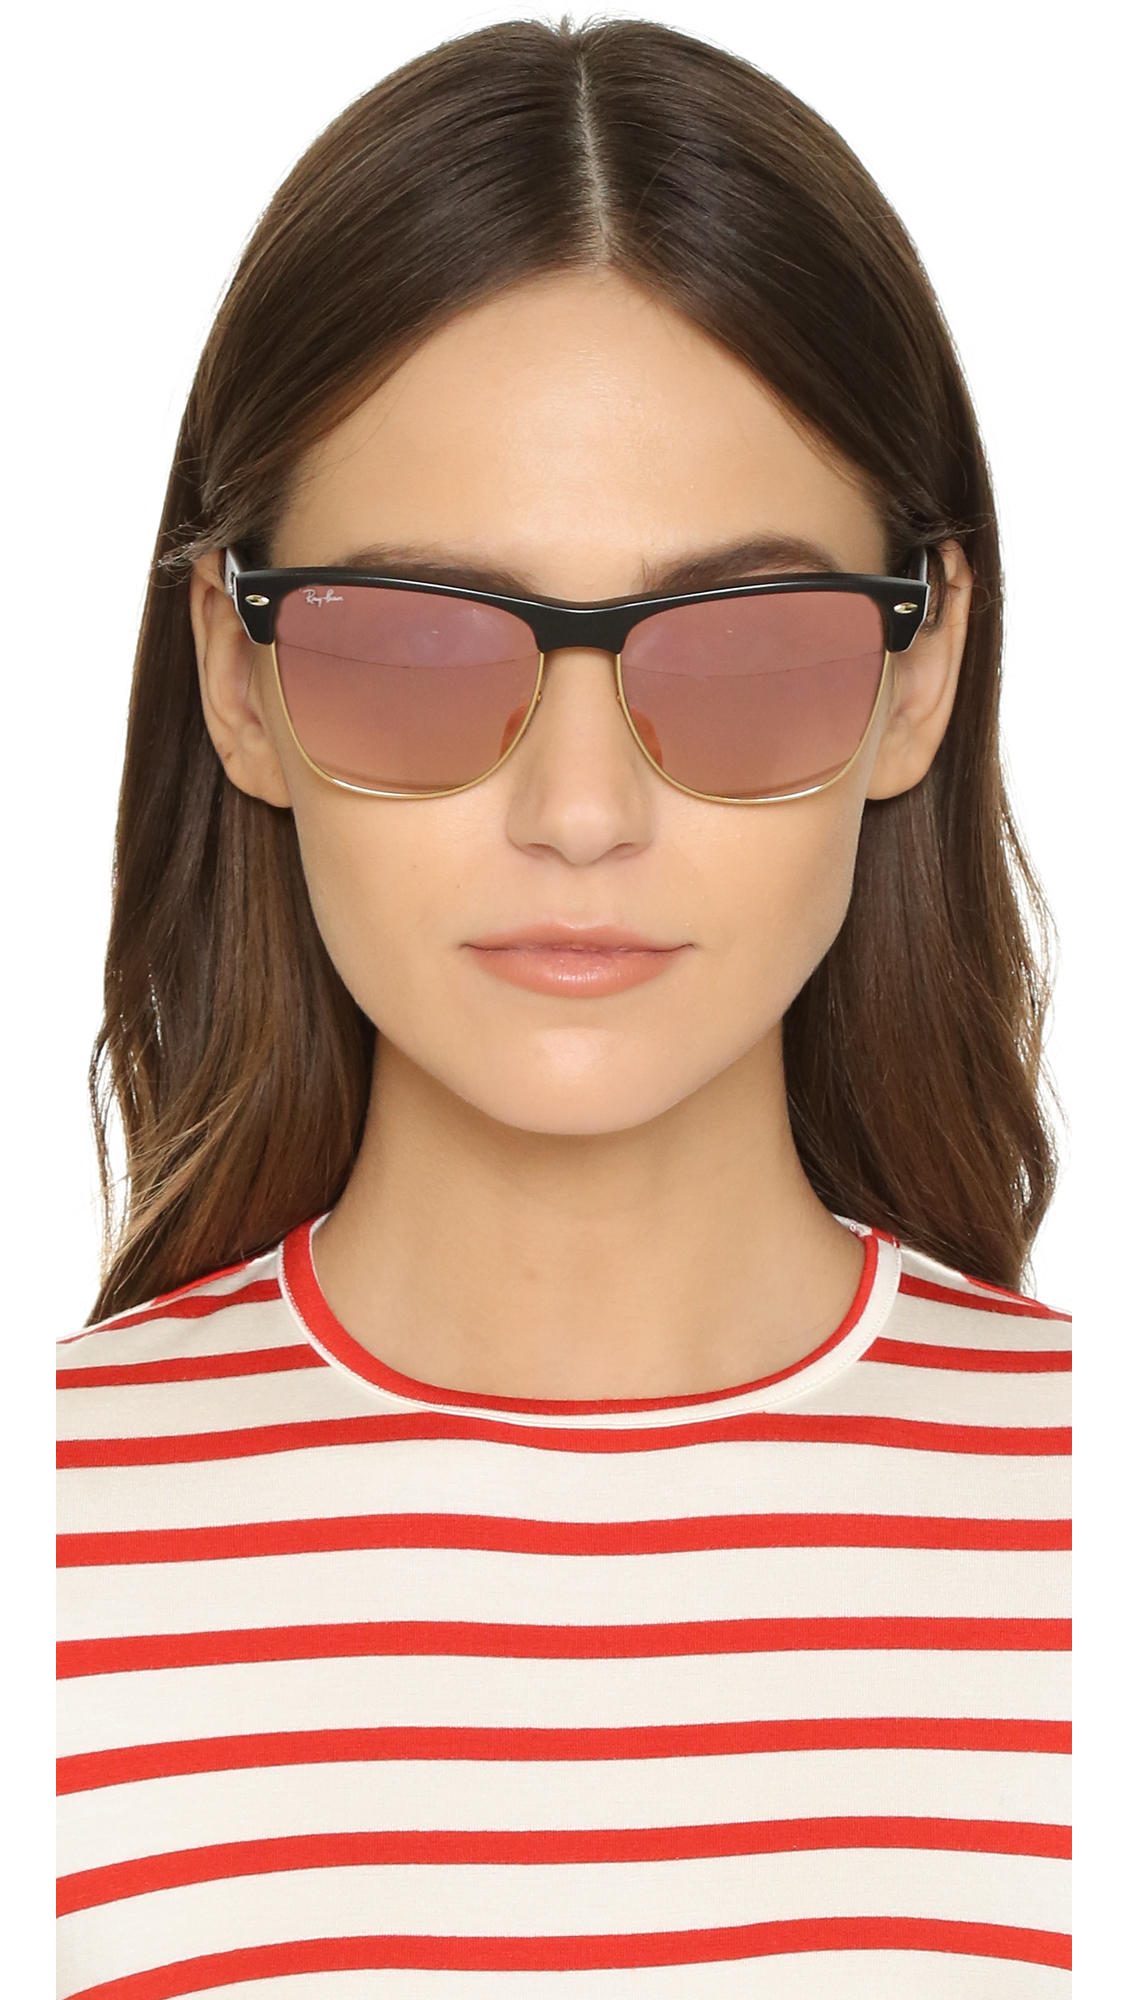 ray ban oversized clubmaster sunglasses  Ray-ban Oversized Mirrored Clubmaster Sunglasses in Black